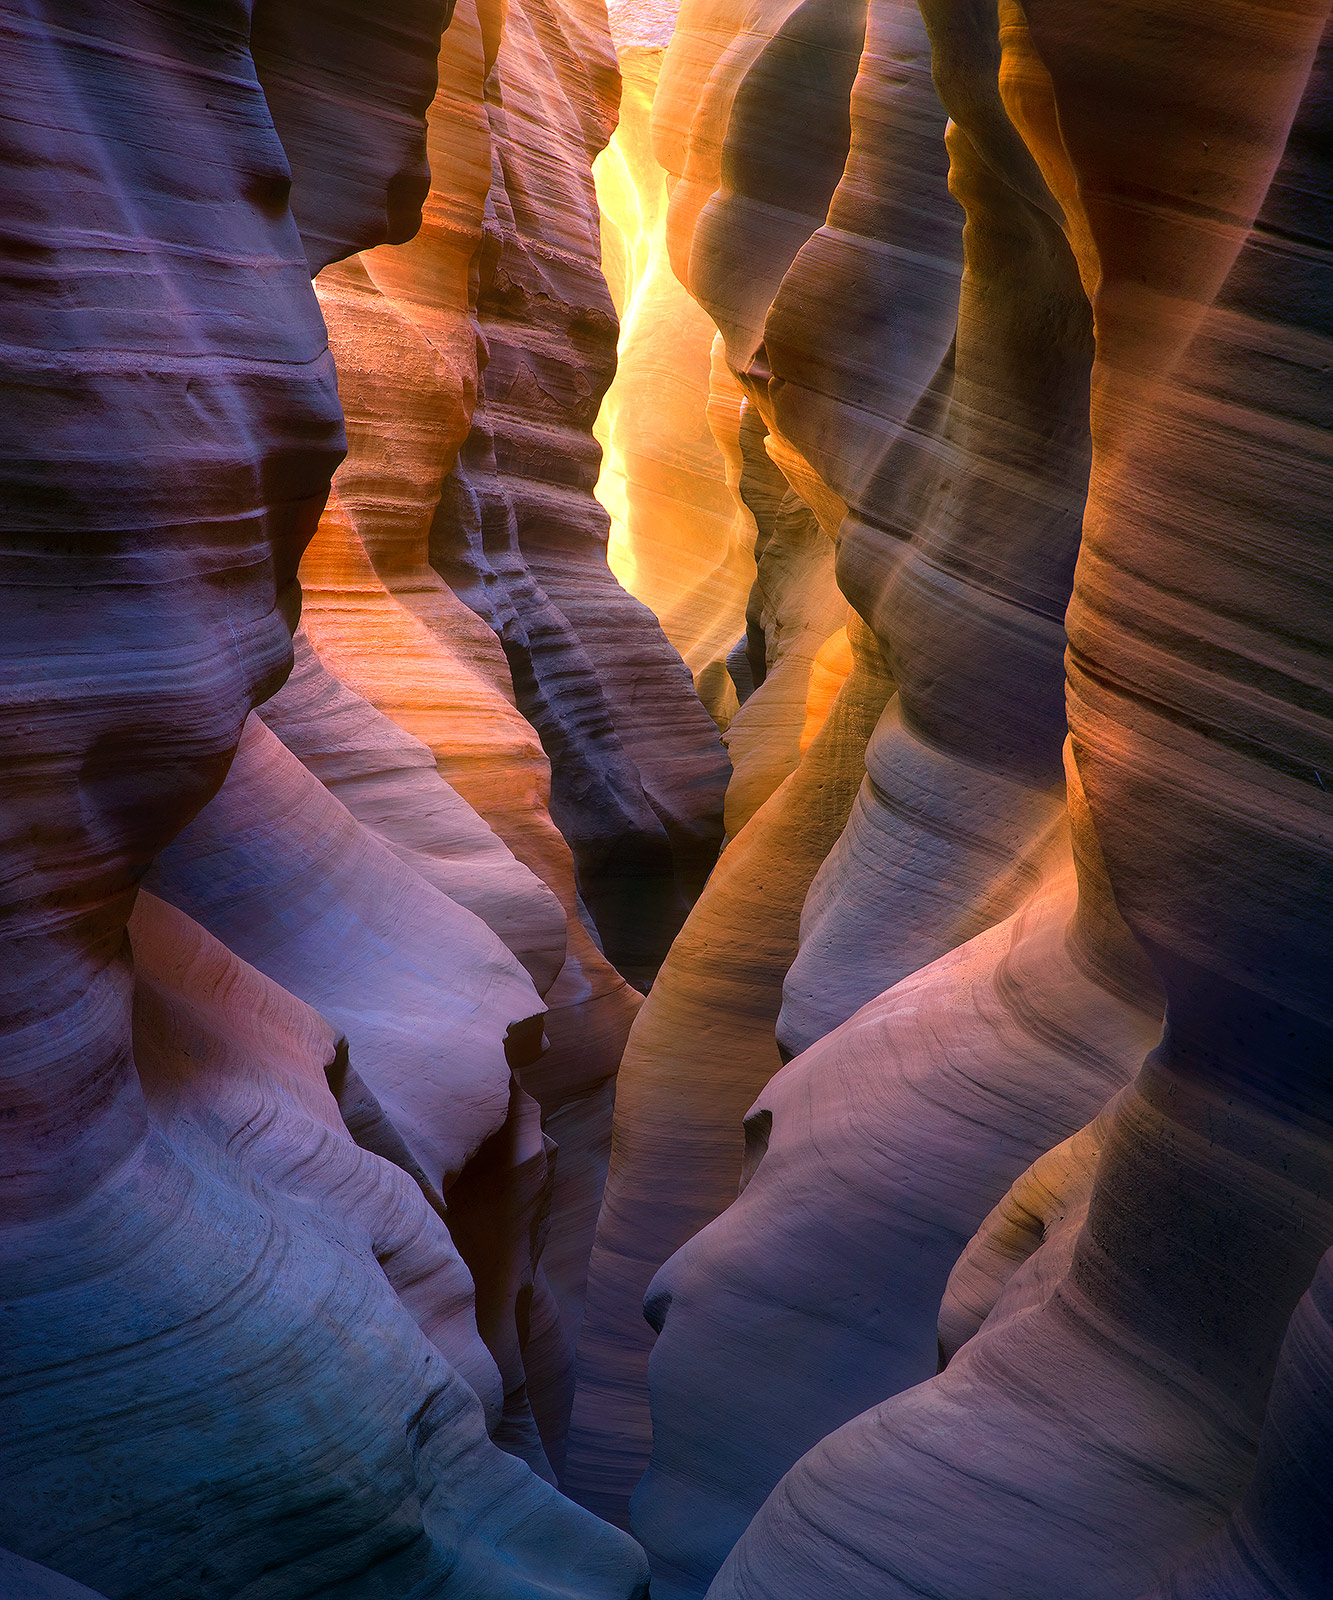 colorful, light, reflected, remote, slot canyon, photo